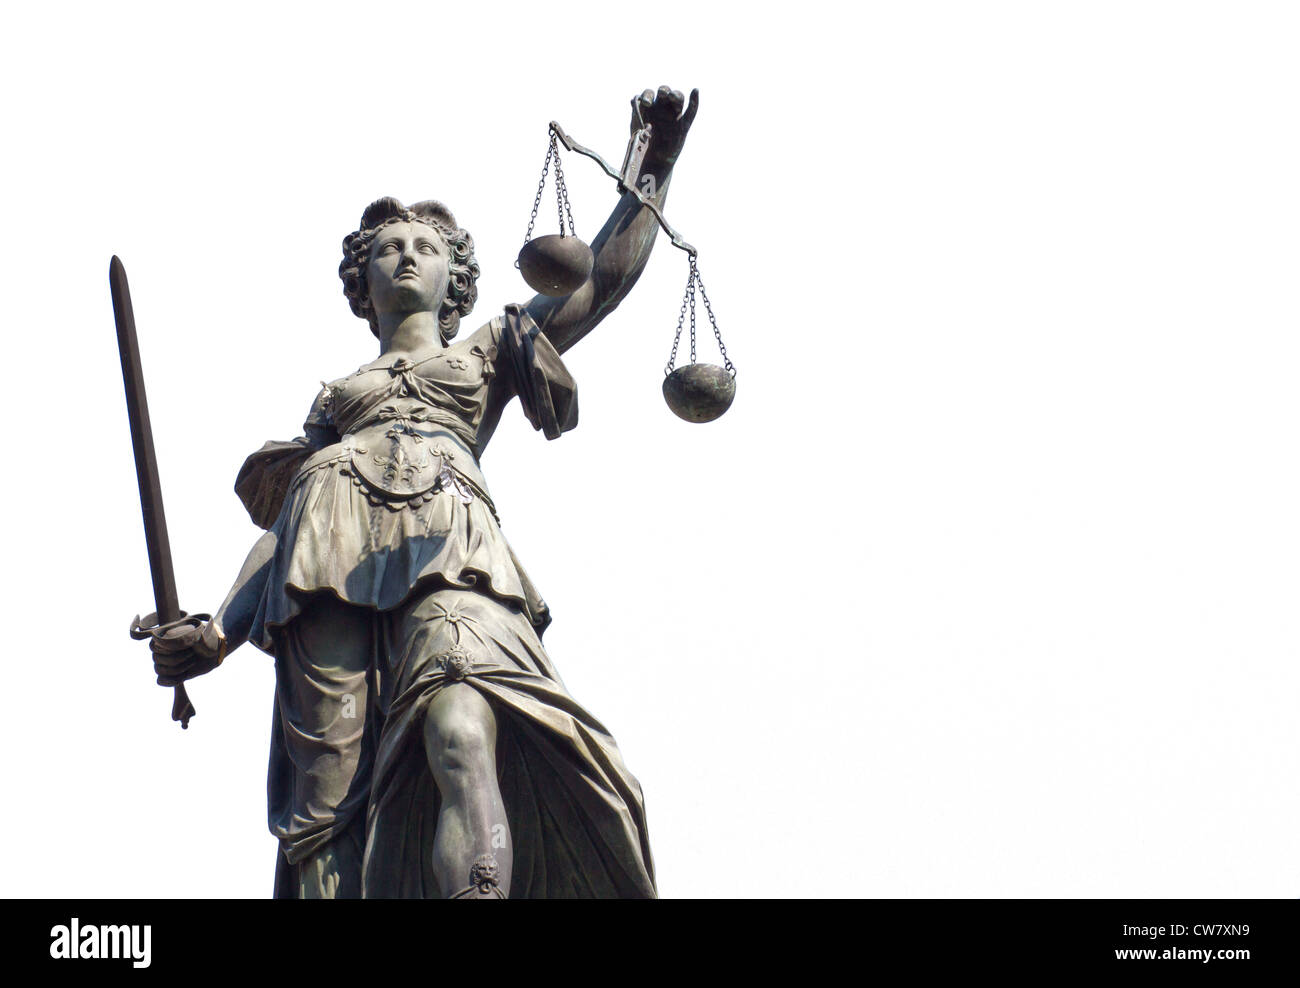 Justitia isolated on a white background, Frankfurt, Germany - Stock Image